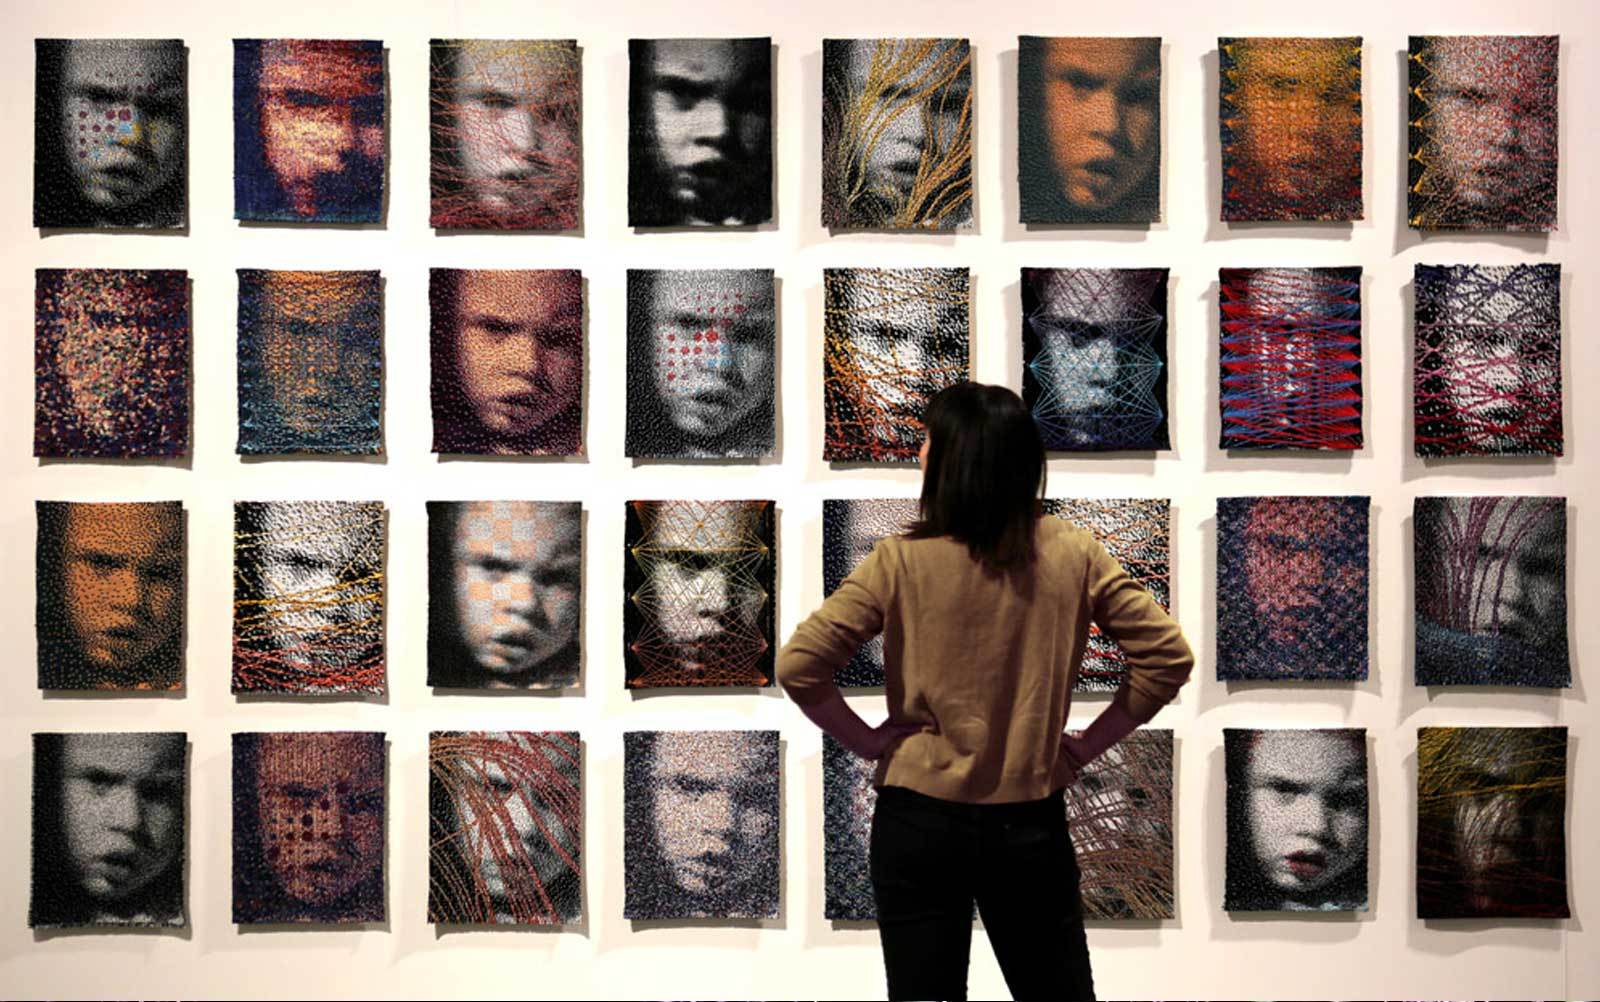 An instilation of woven portraits of a young girls face hung on a wall.